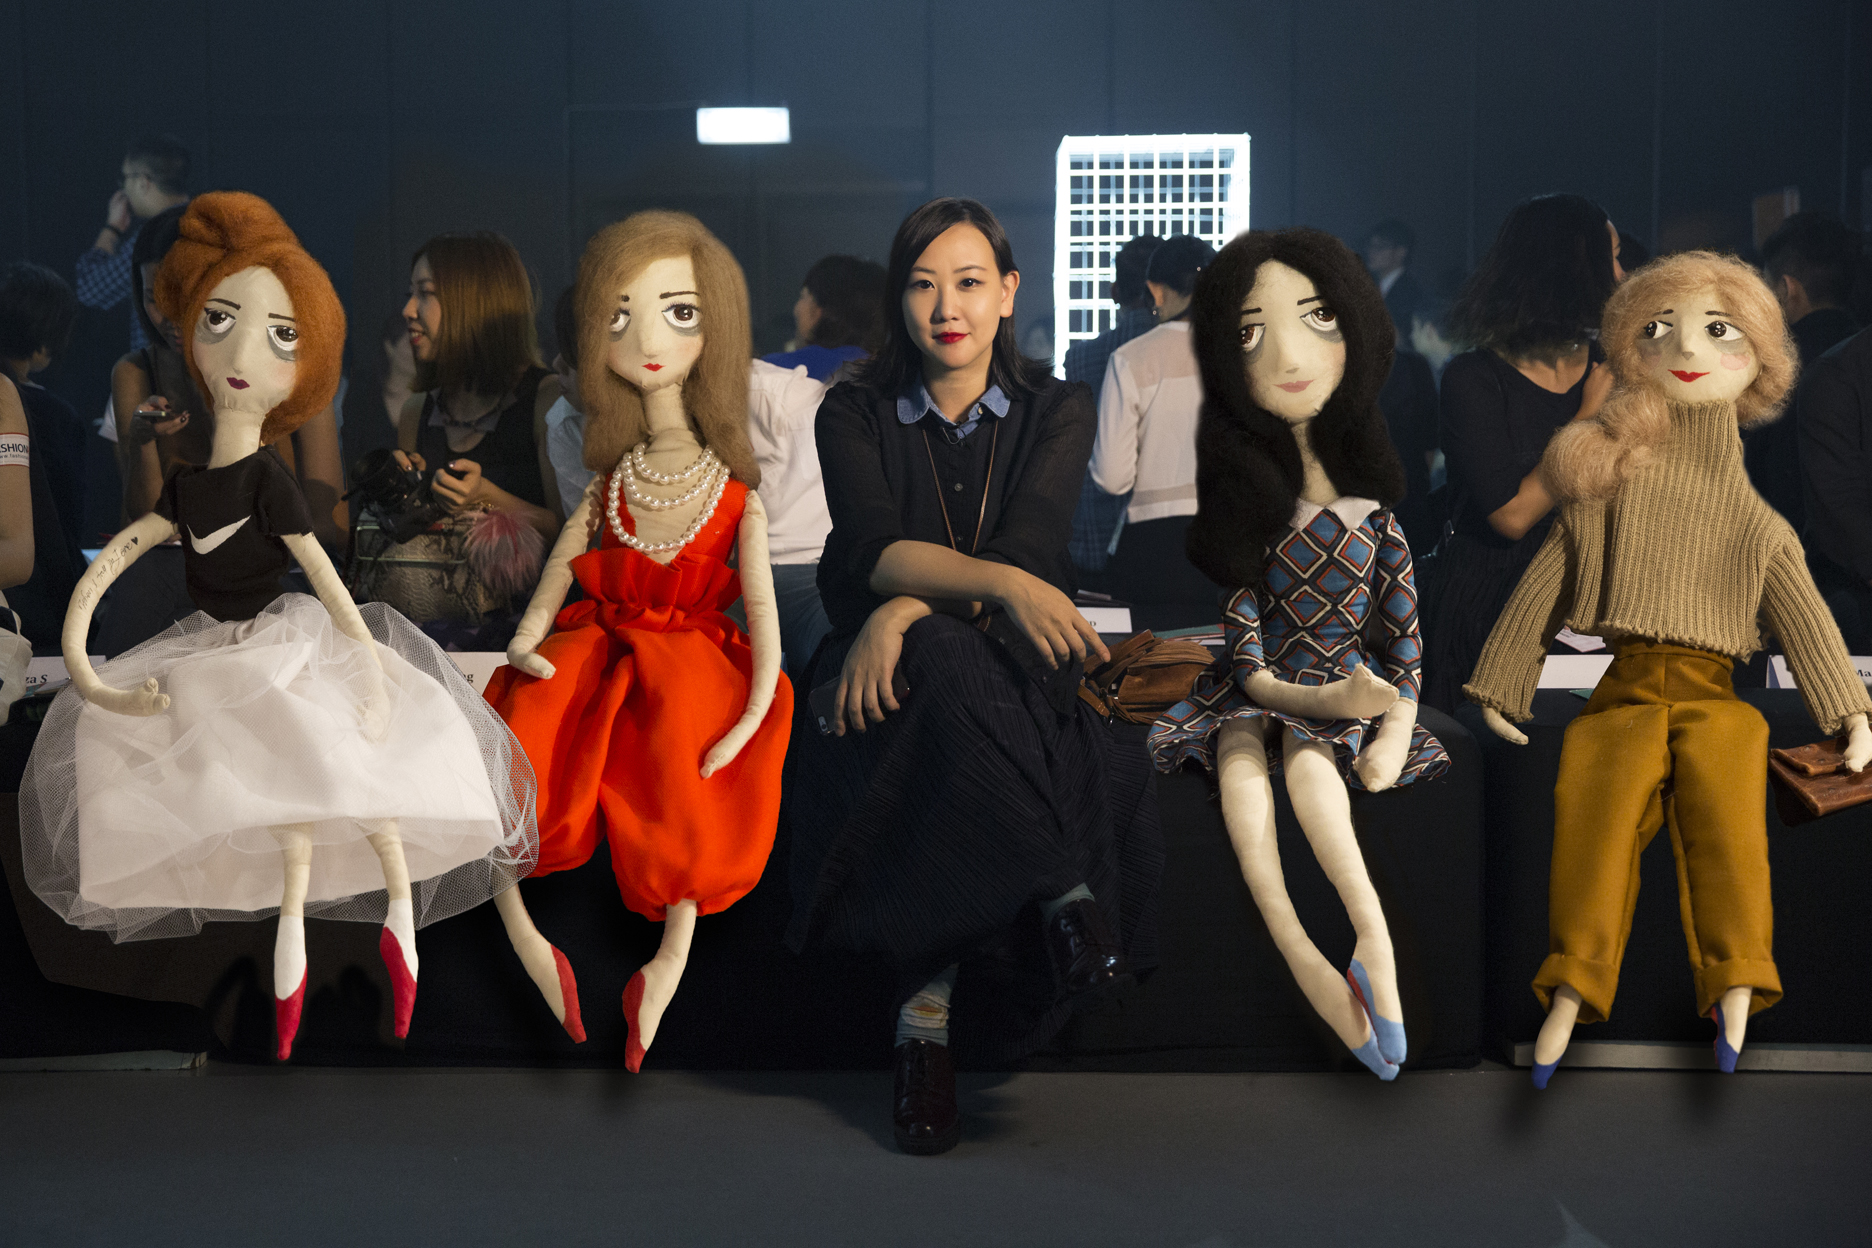 Ning Lau with some of her creations front row at a fashion show.